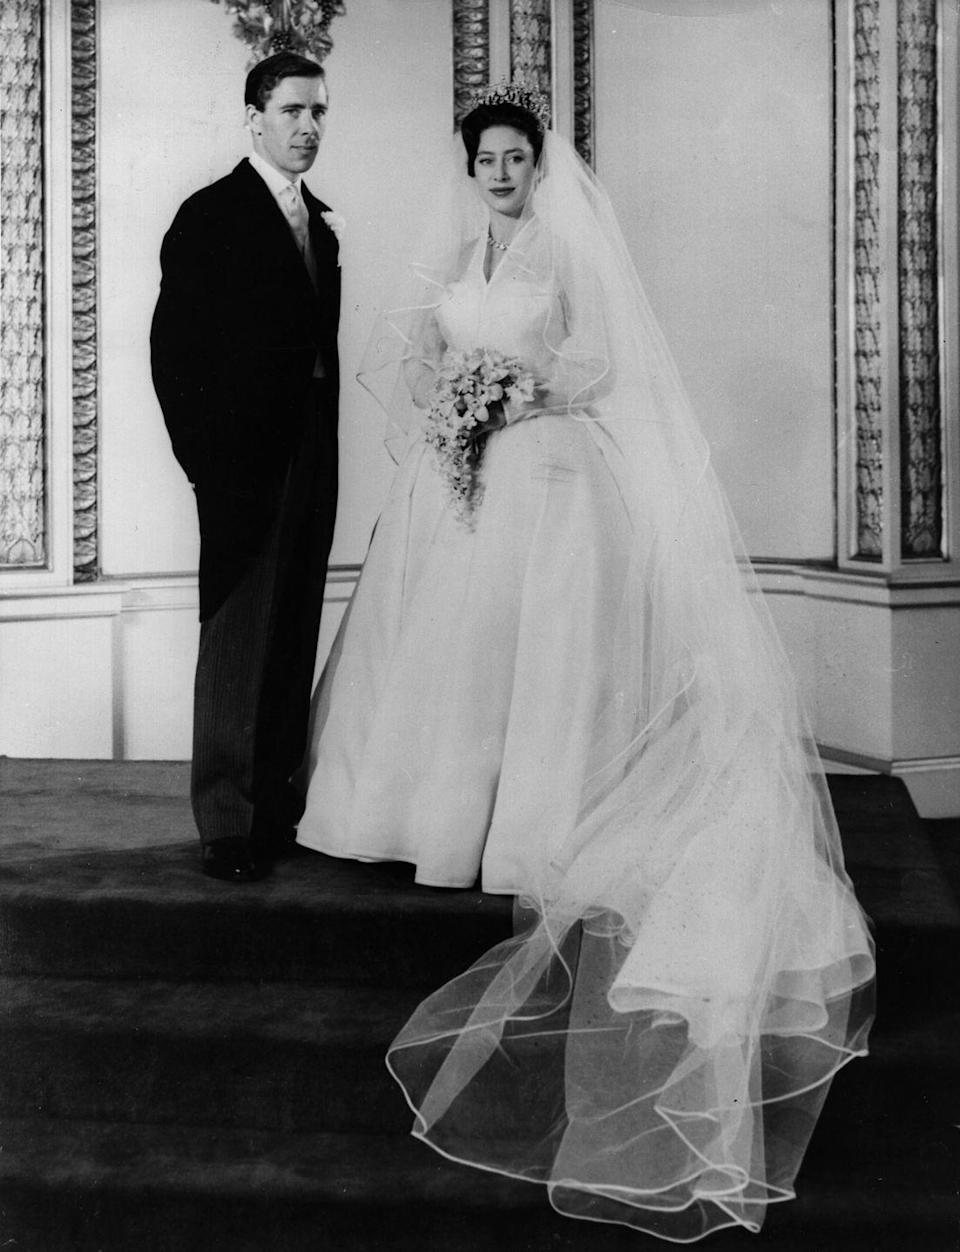 "<p>On May 6, 1960, Princess Margaret and Anthony Armstrong-Jones tied the knot in the first-ever televised royal wedding. The two met at a supper party in 1958 and kept their relationship a secret, according to <a href=""https://www.westminster-abbey.org/abbey-commemorations/royals/princess-margaret-daughter-of-george-vi"" rel=""nofollow noopener"" target=""_blank"" data-ylk=""slk:Westminster Abbey"" class=""link rapid-noclick-resp"">Westminster Abbey</a>.</p>"